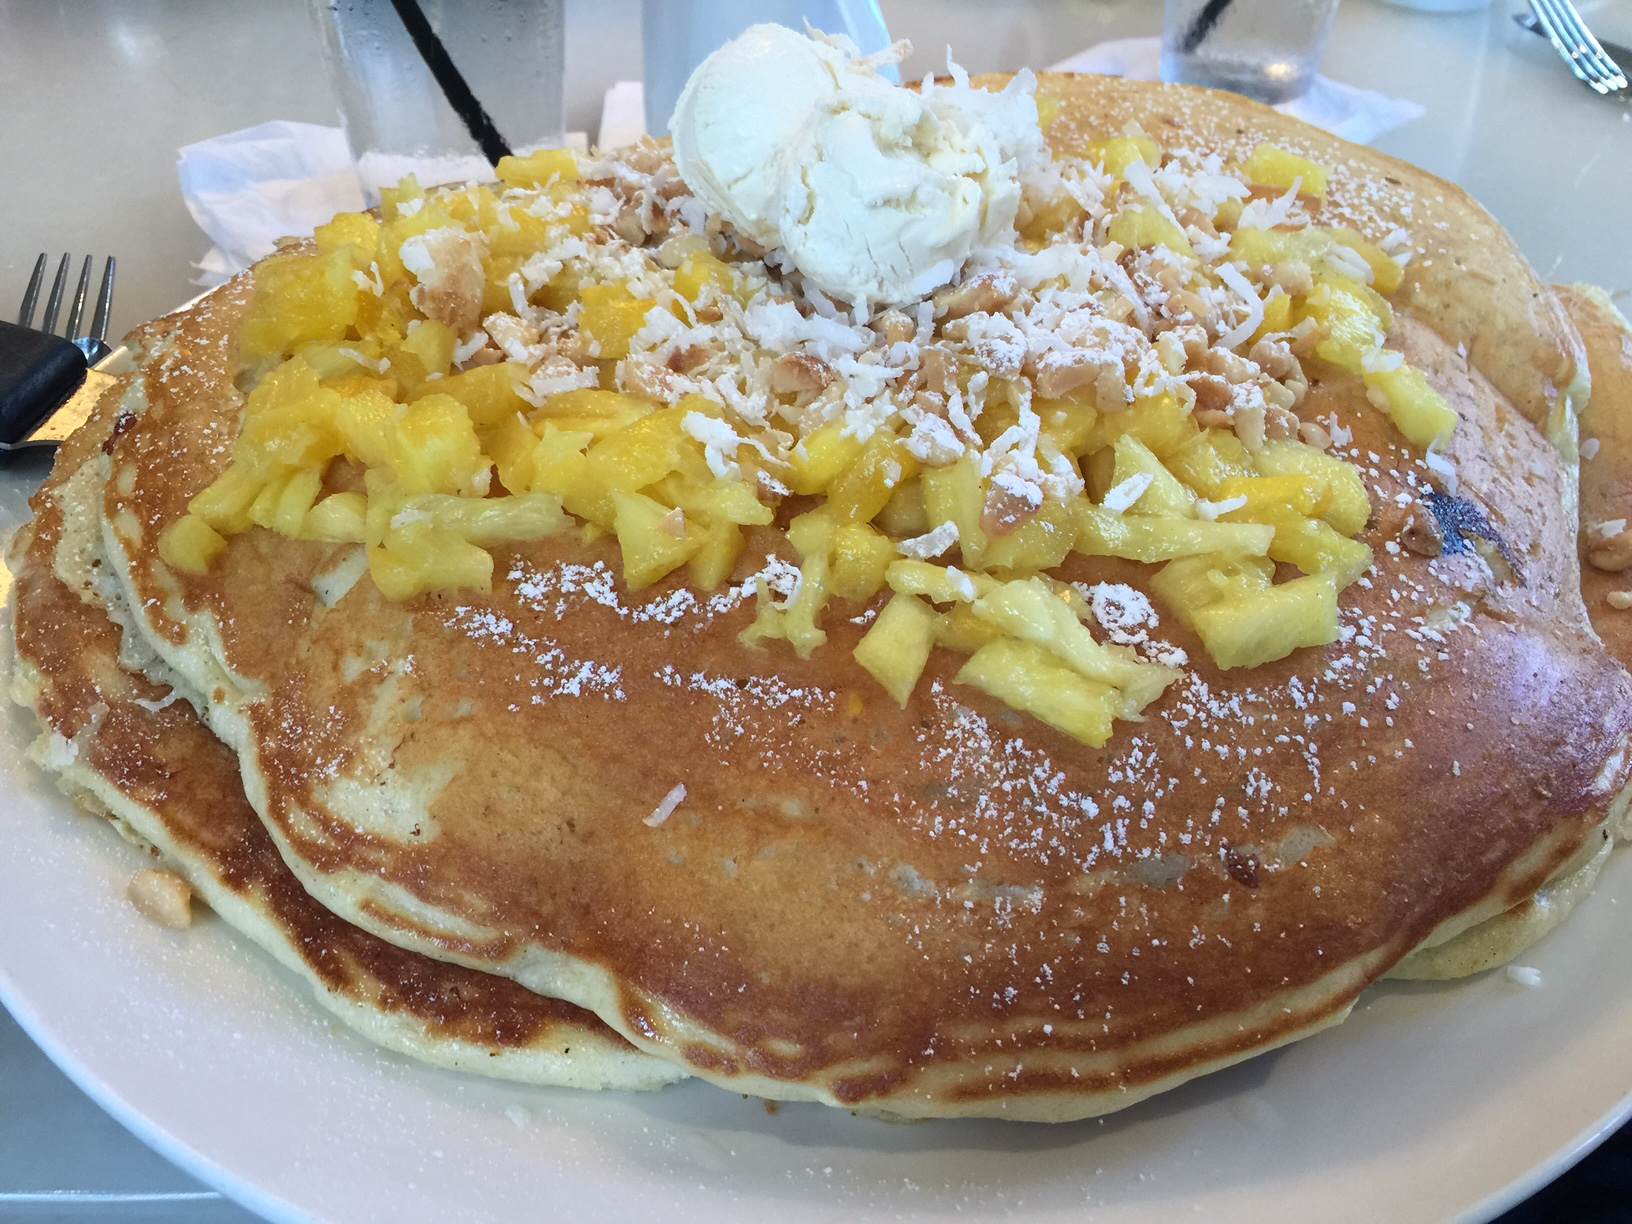 Mac 14/7 (Oahu): Here's an enormous pancake that was featured on the Travel Channel's Man v. Food show. It's five pounds, and three of us barely were able to finish half.